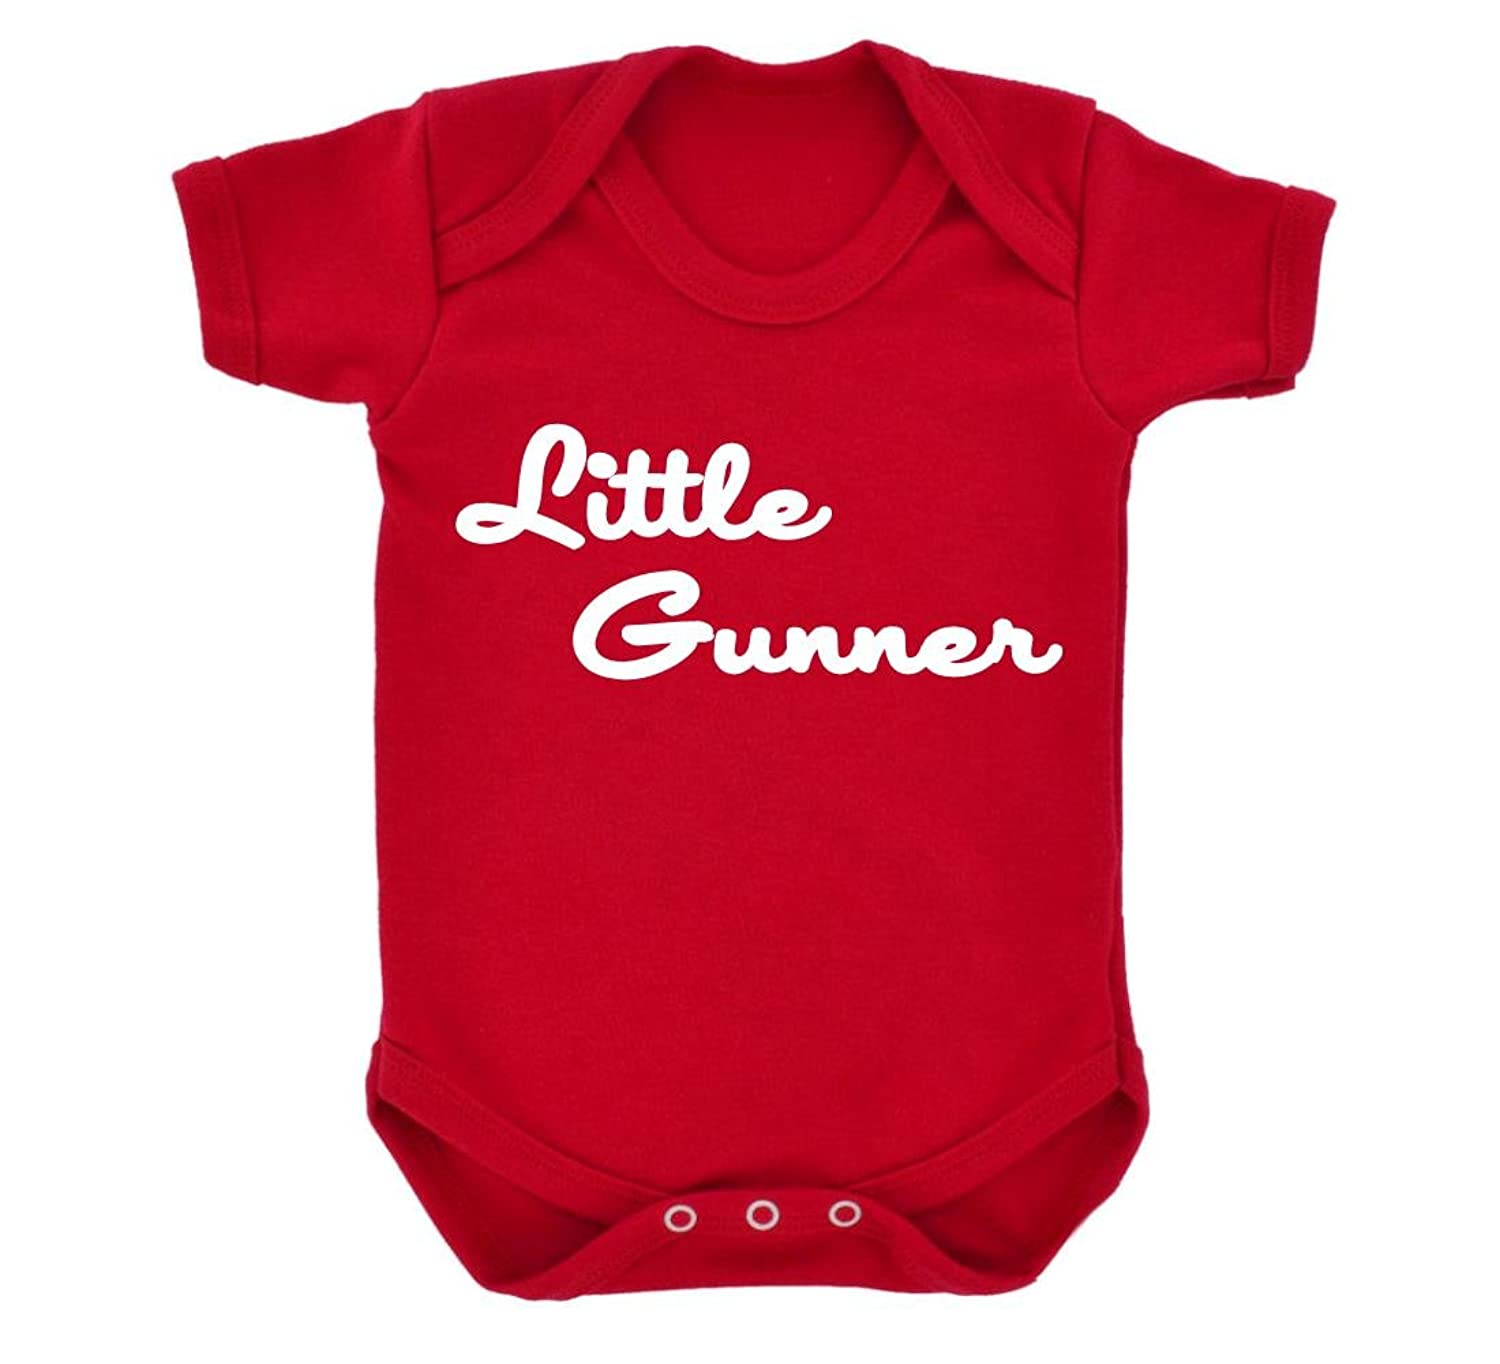 d8dd9609be5d04 Süßer Gunner Design Baby Body